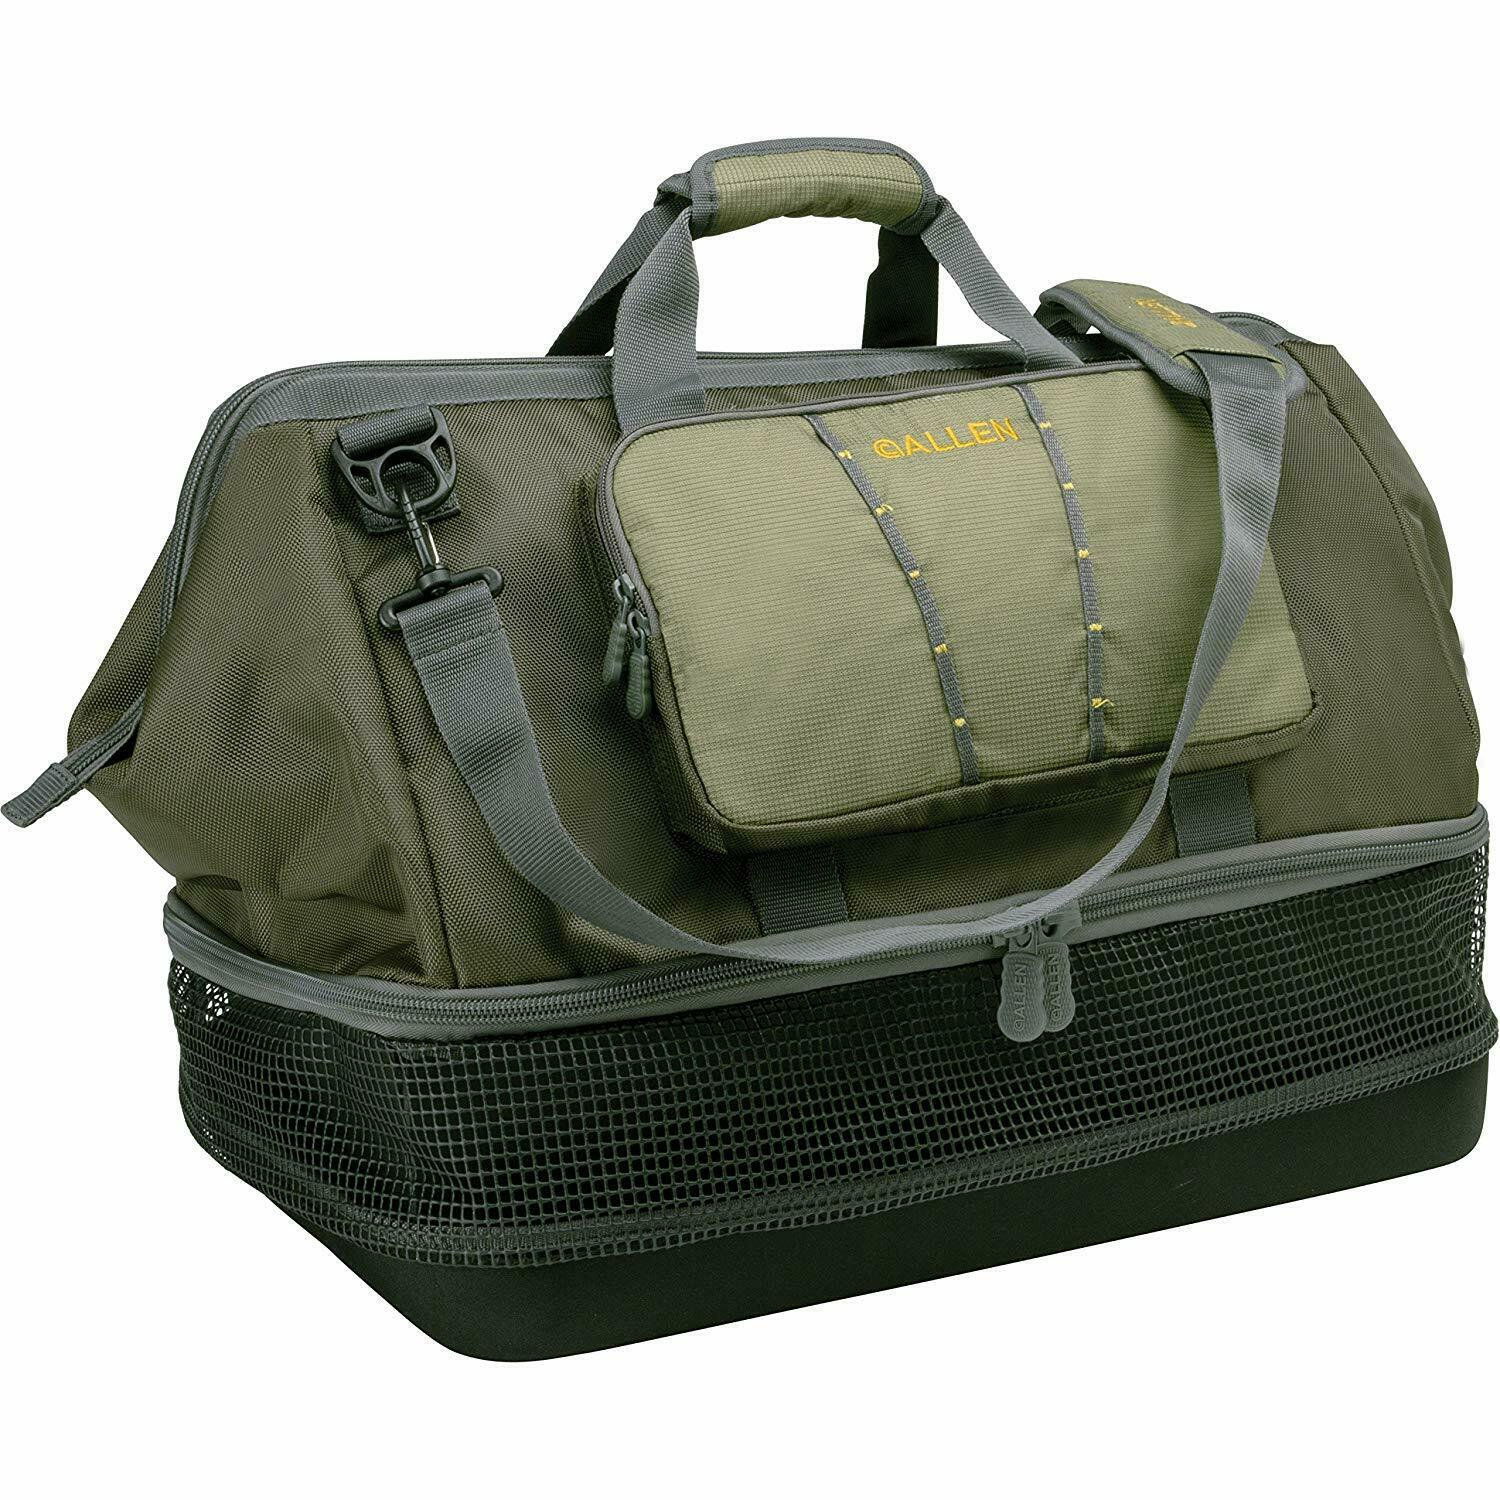 Heavy Duty Hunting Bag with Separate Wet and Dry Storage